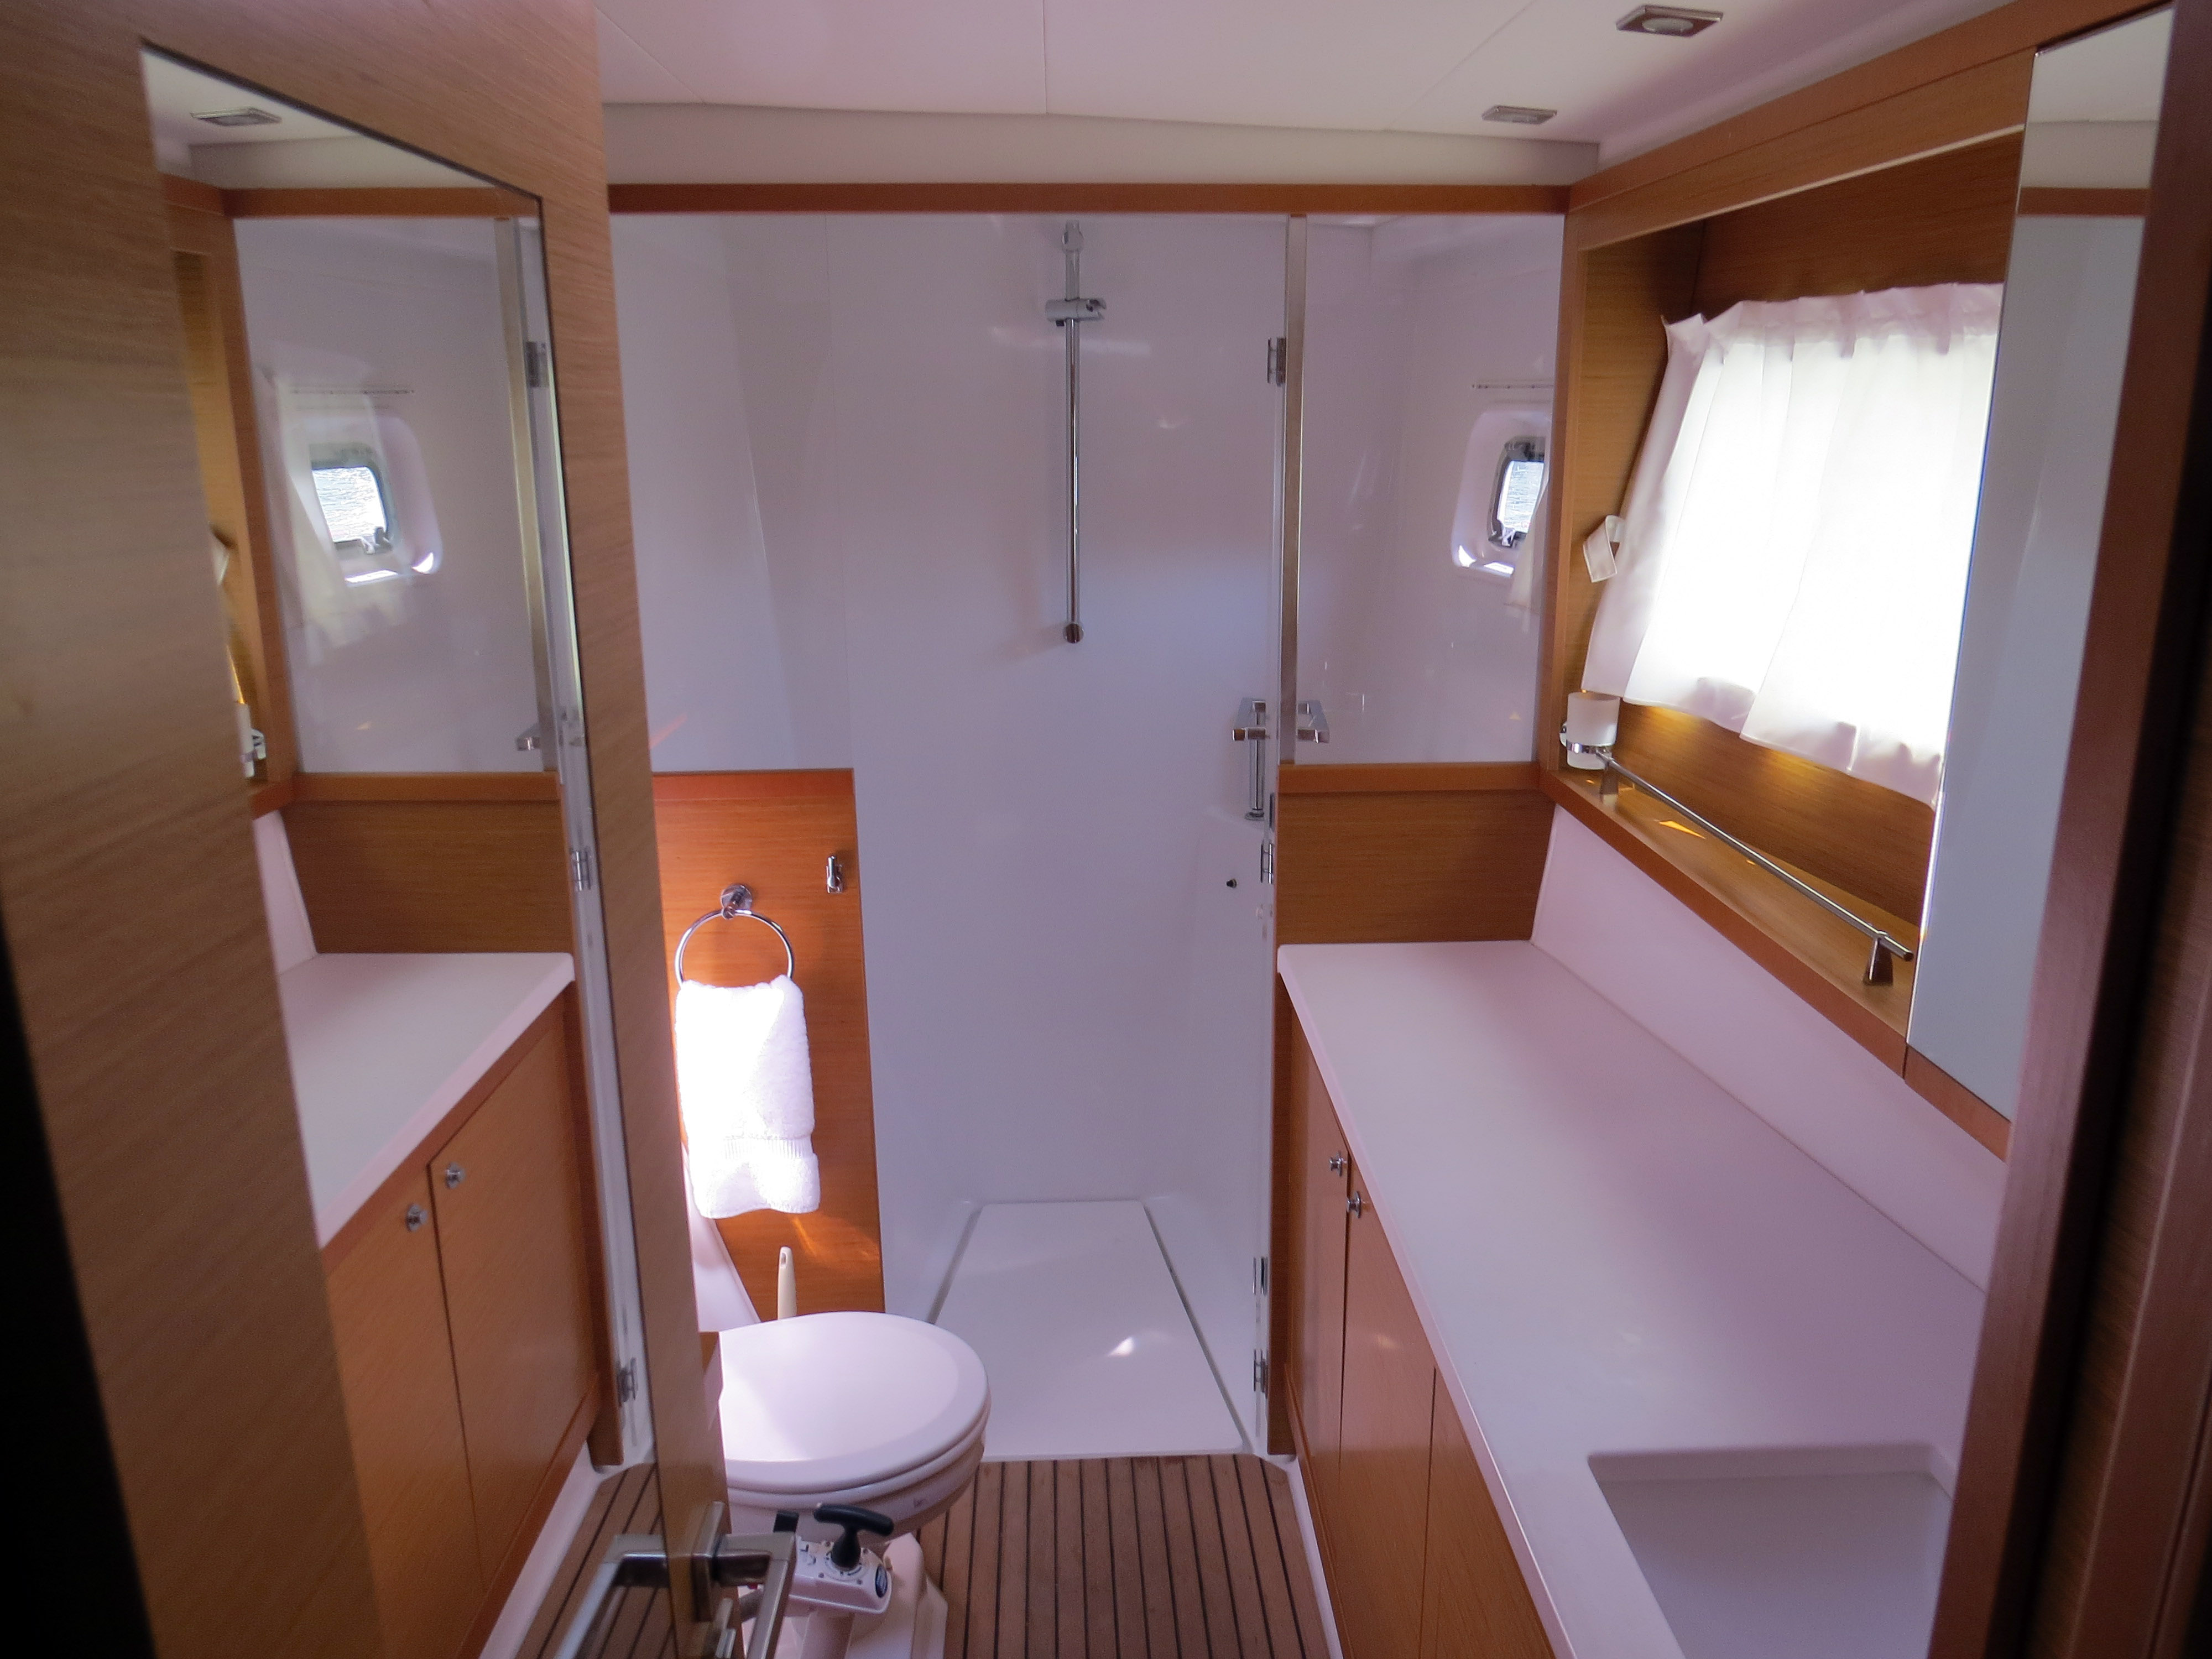 Pontoon Boats With Bathroom Design Ideas. pontoon boats with bathroom for sale   Bathroom Design Ideas